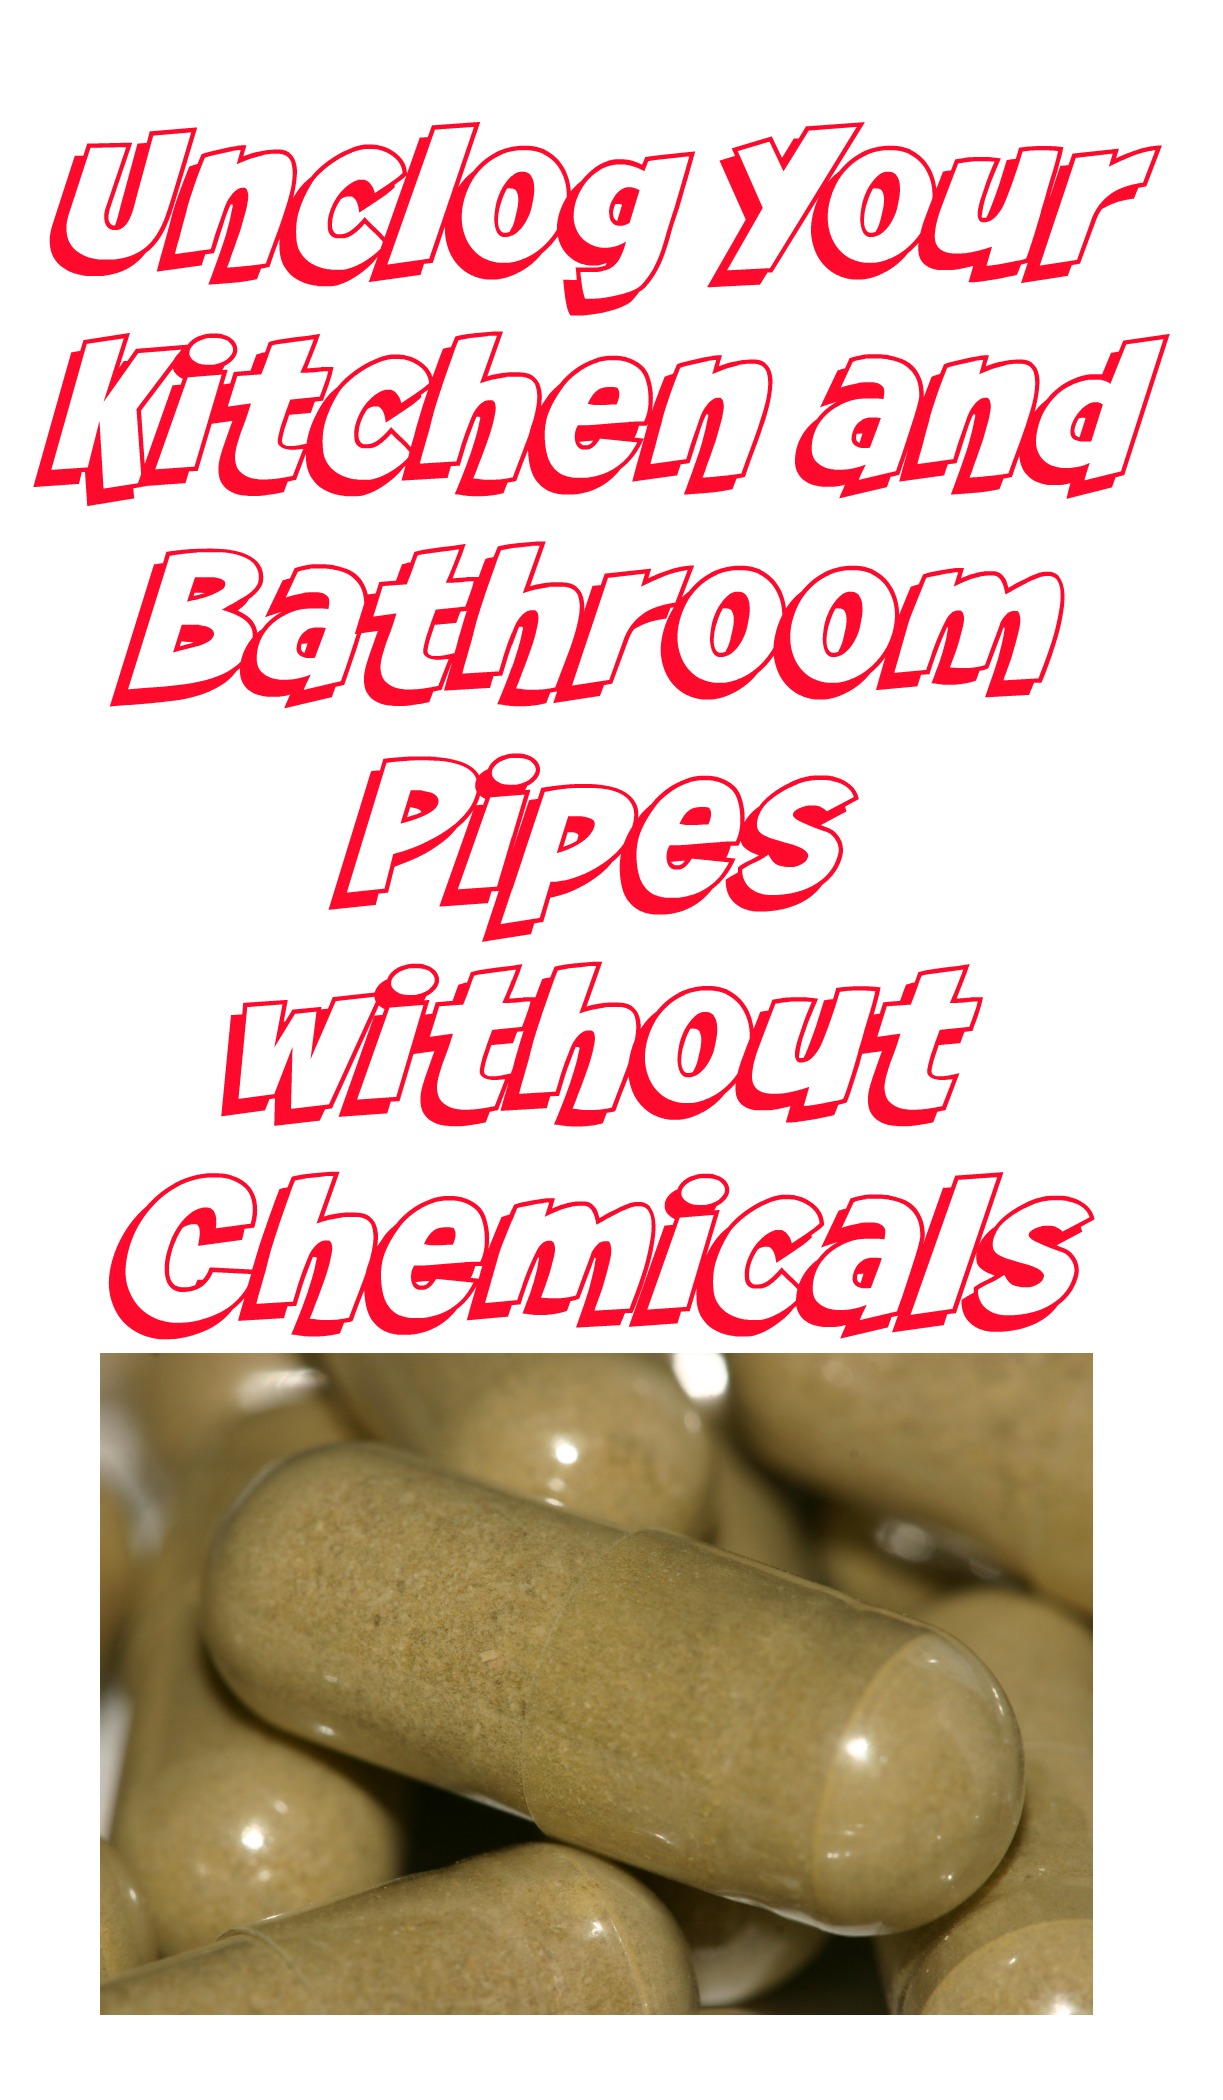 Unclog Your Kitchen and Bathroom Pipes without Chemicals